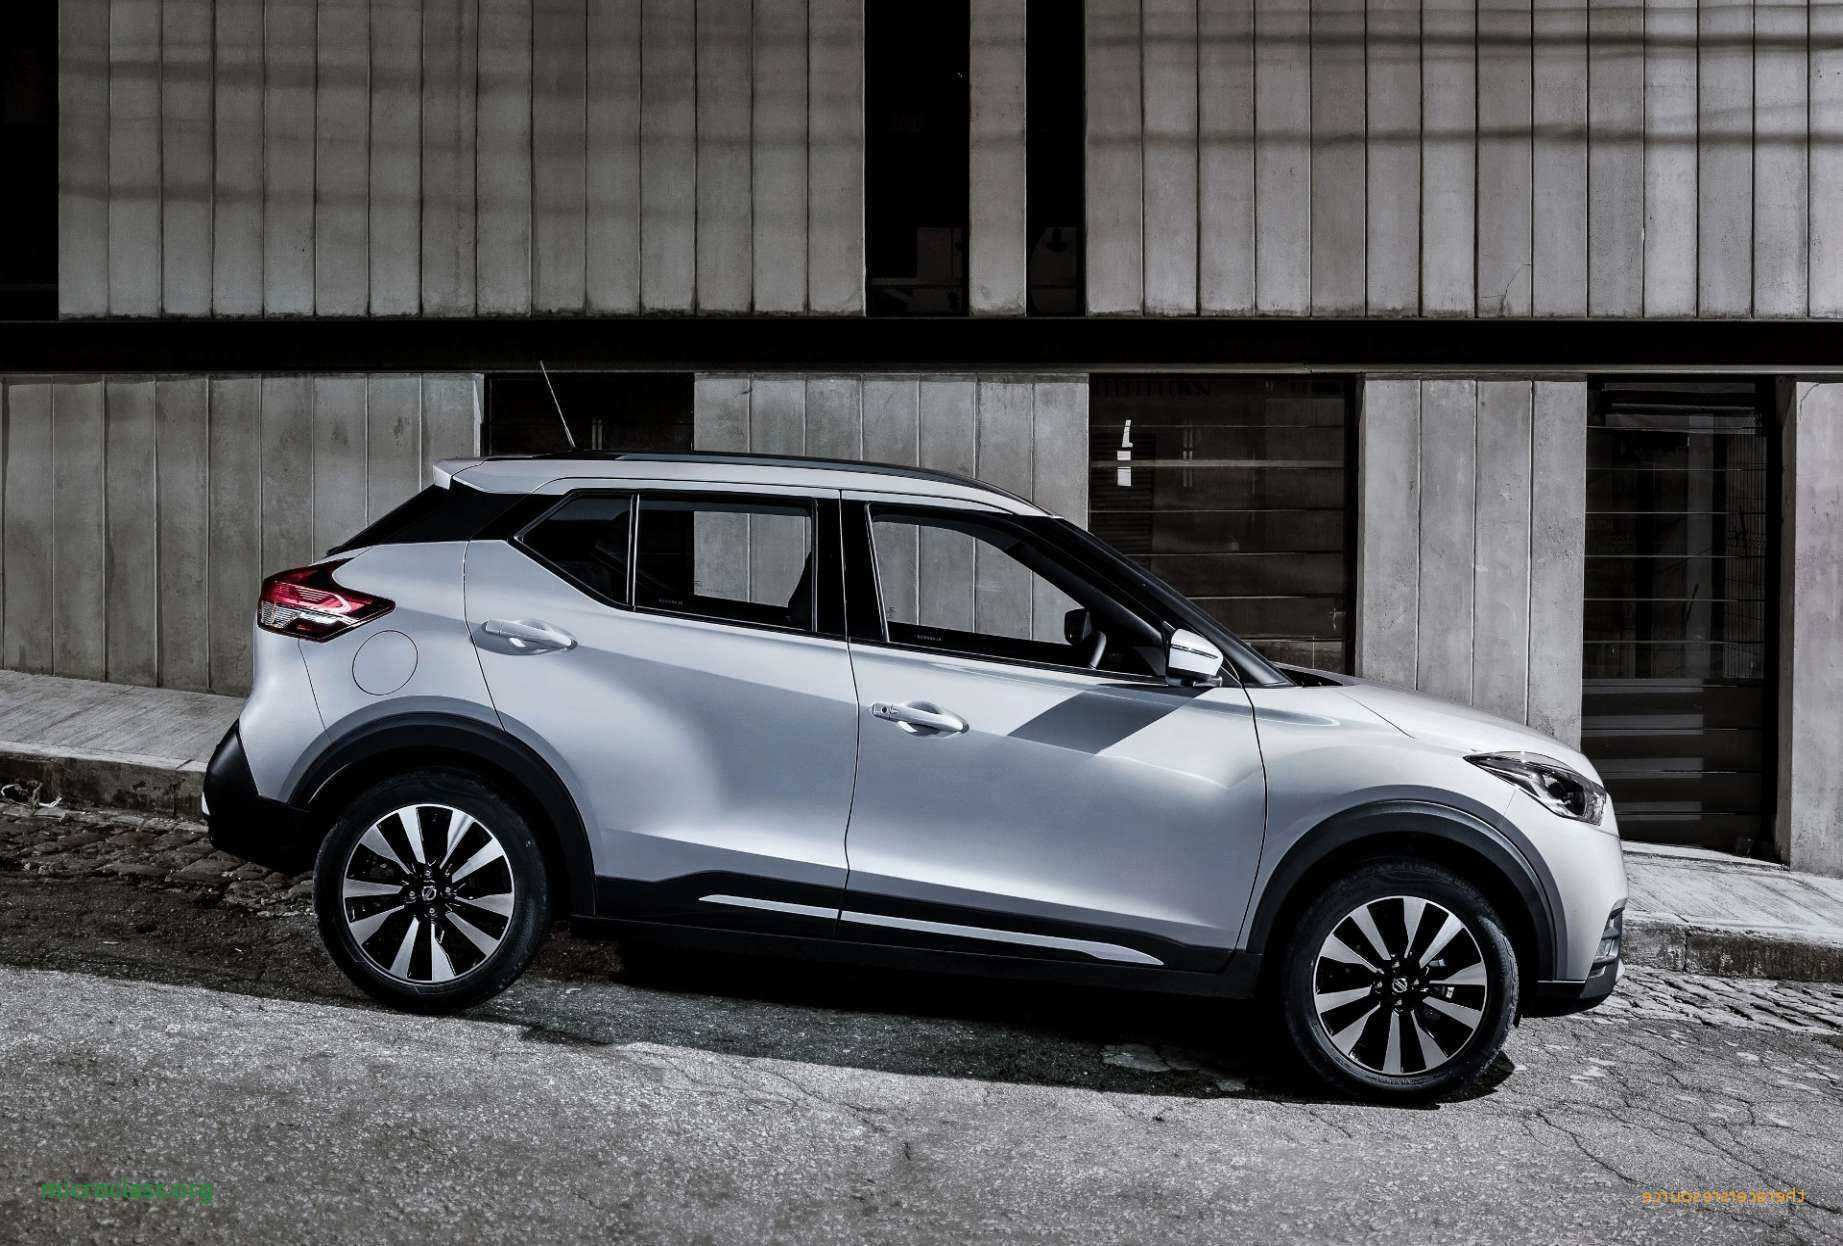 63 The Best Nissan Kicks 2019 Mexico Interior